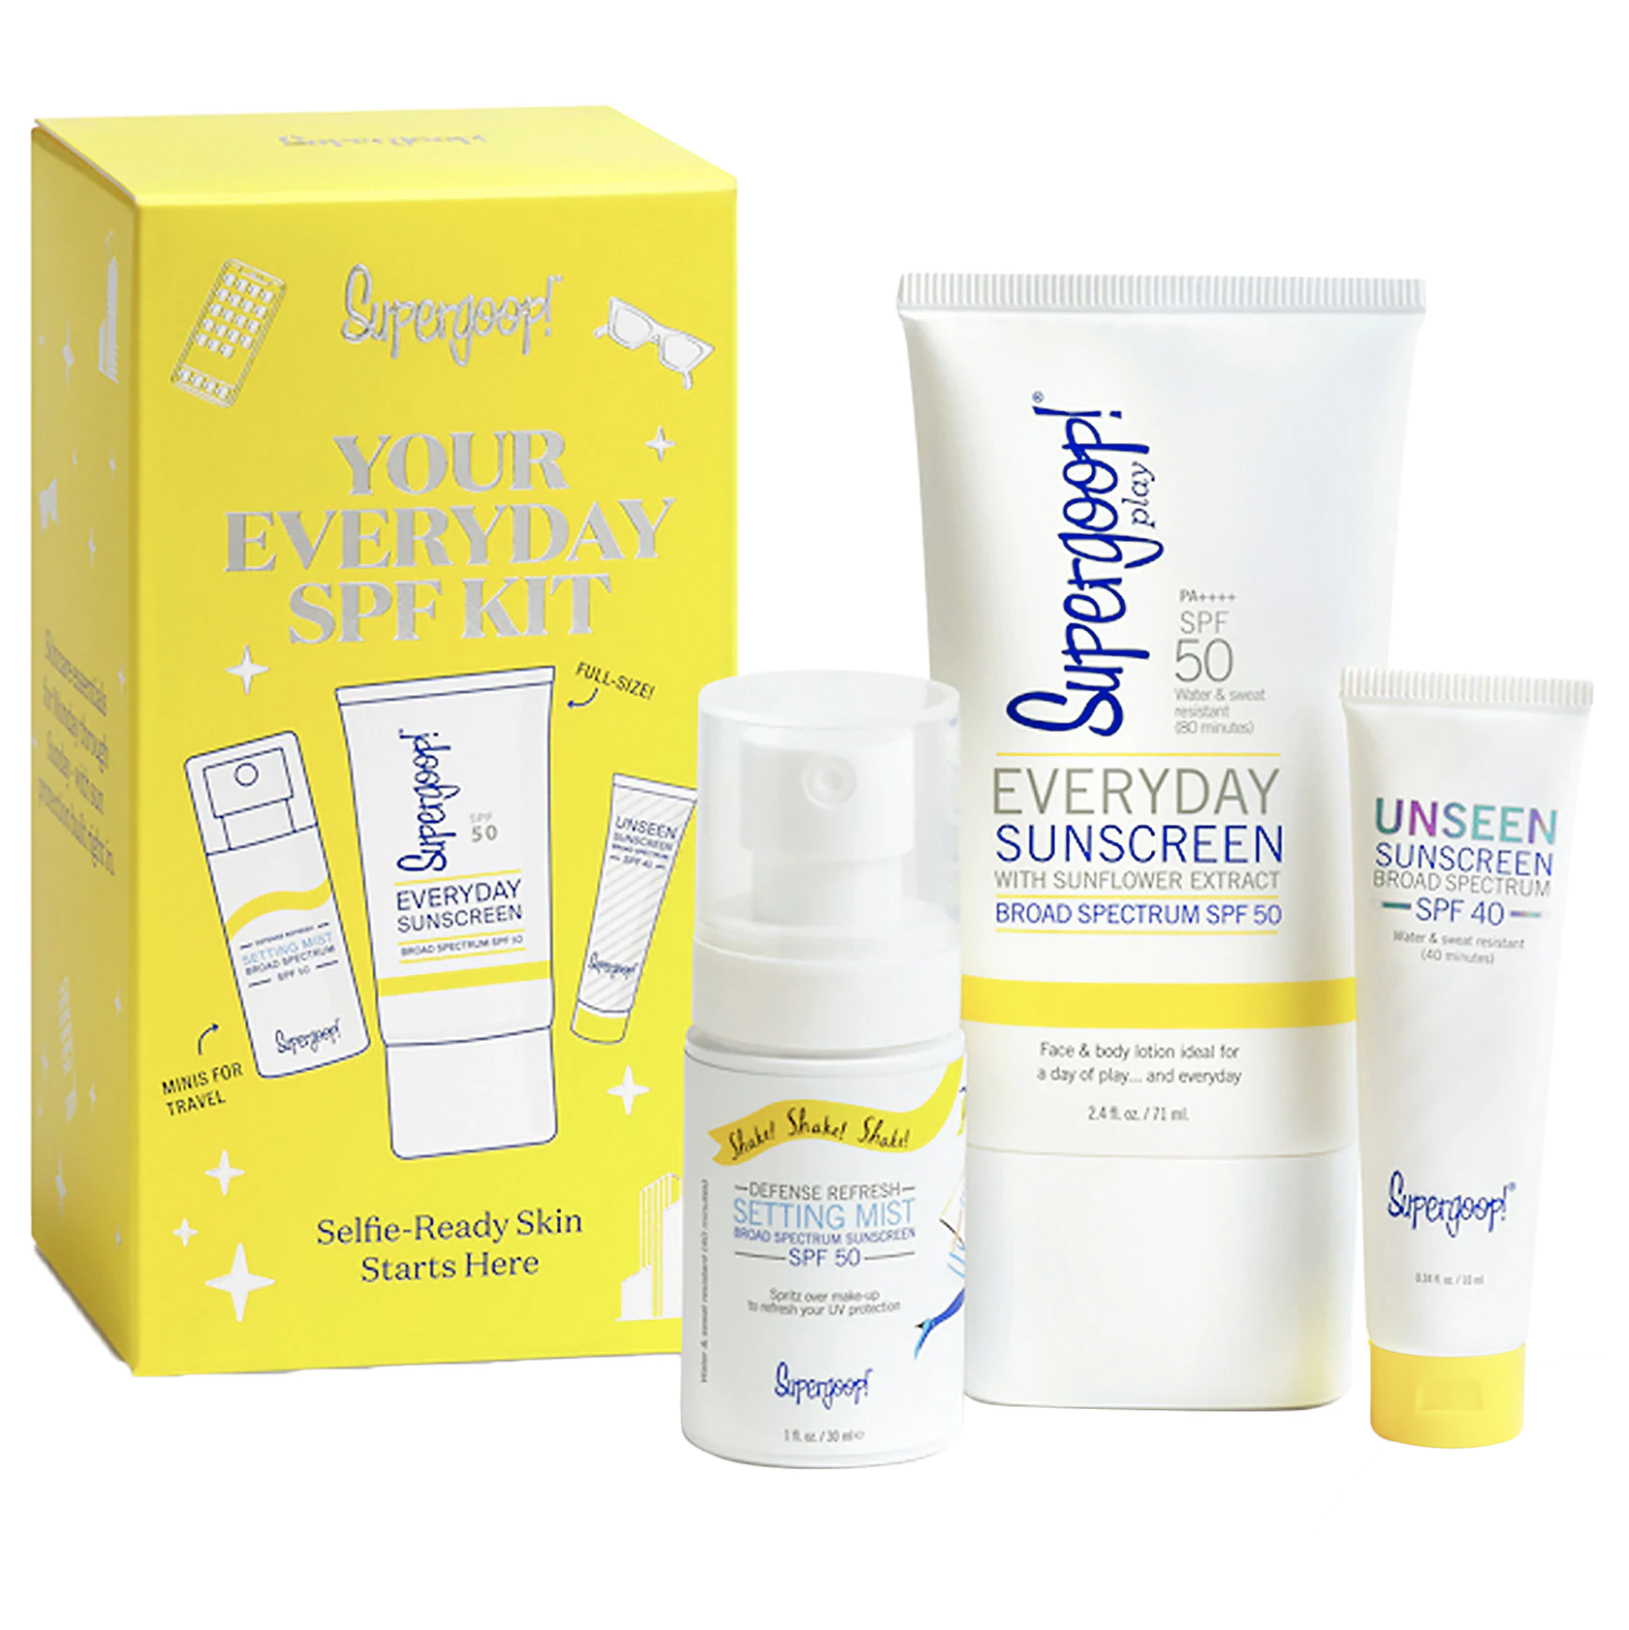 Best Christmas gifts 2019 - Supergoop Your Everyday SPF Kit